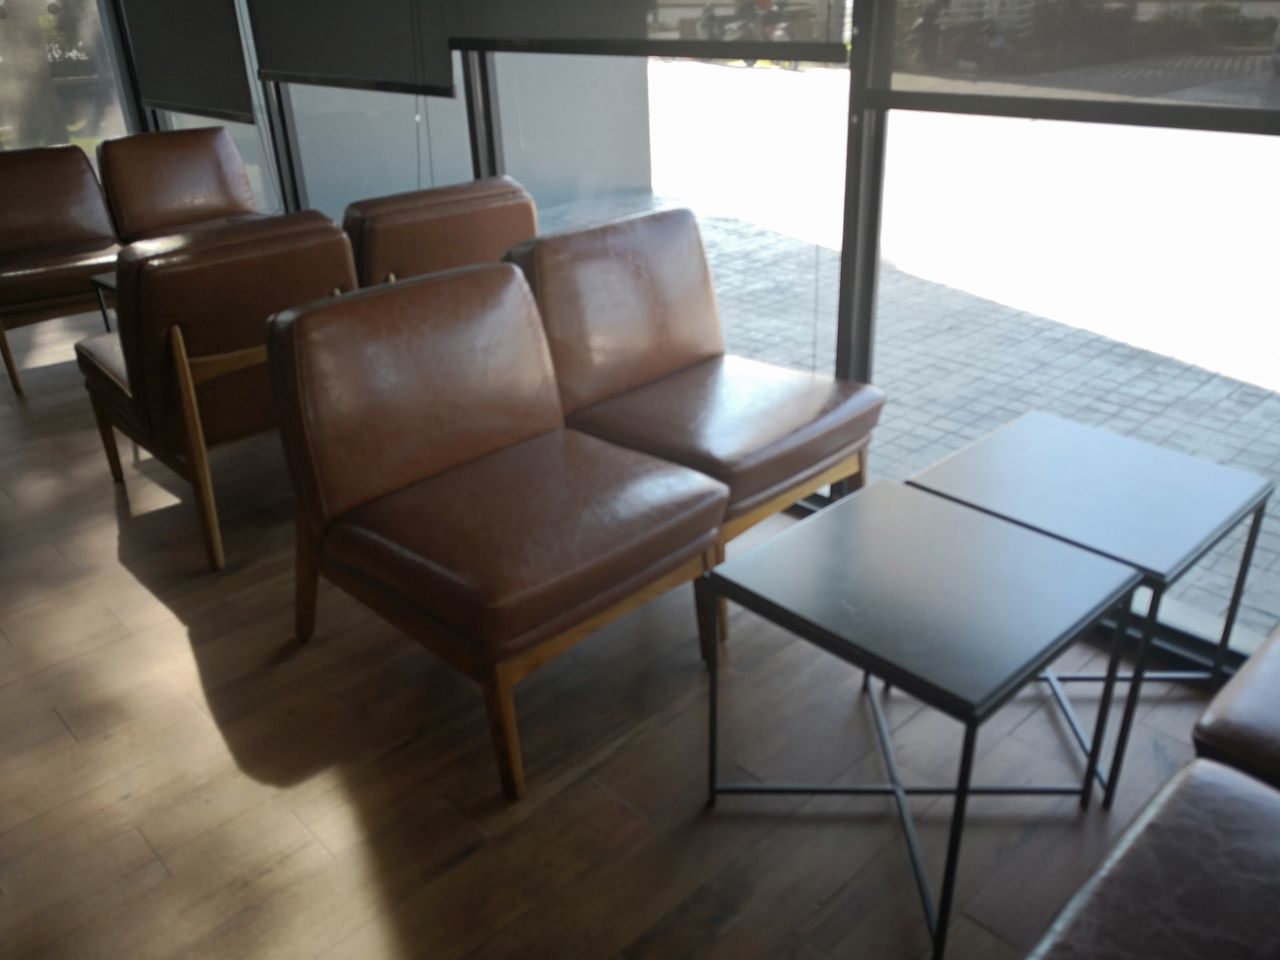 EMPTY CHAIRS AND TABLES ON HARDWOOD FLOOR